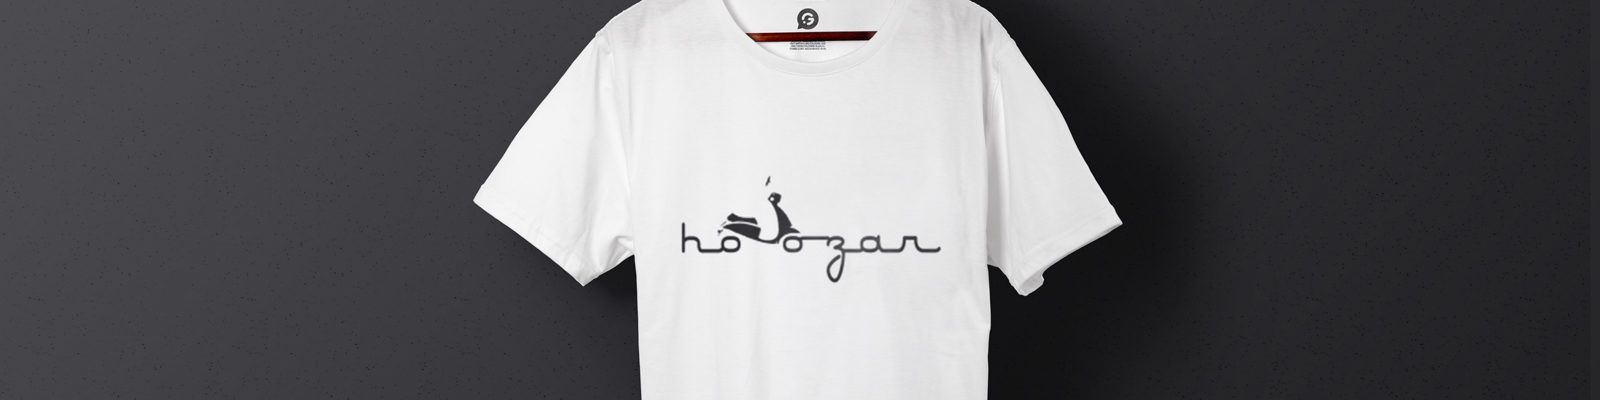 Personalised T-Shirts for Hoozar's motoring event - Header Image